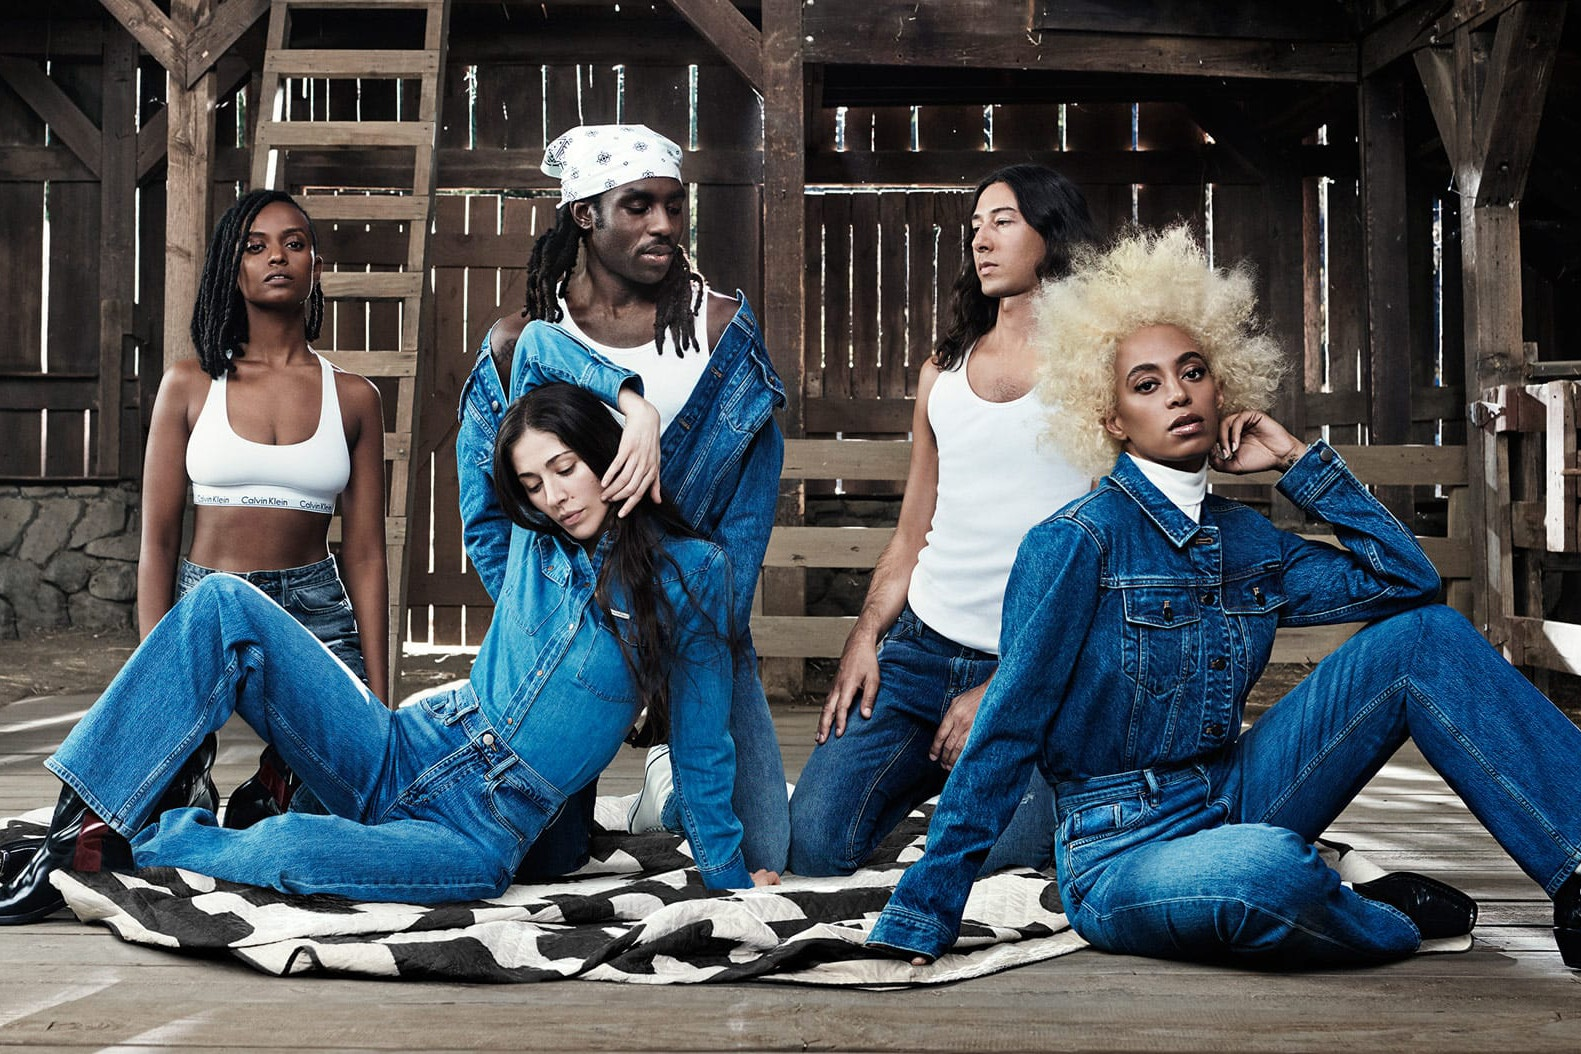 Solange, Kelela, Dev Hynes and More All Feature in Calvin Klein's Recent Campaign